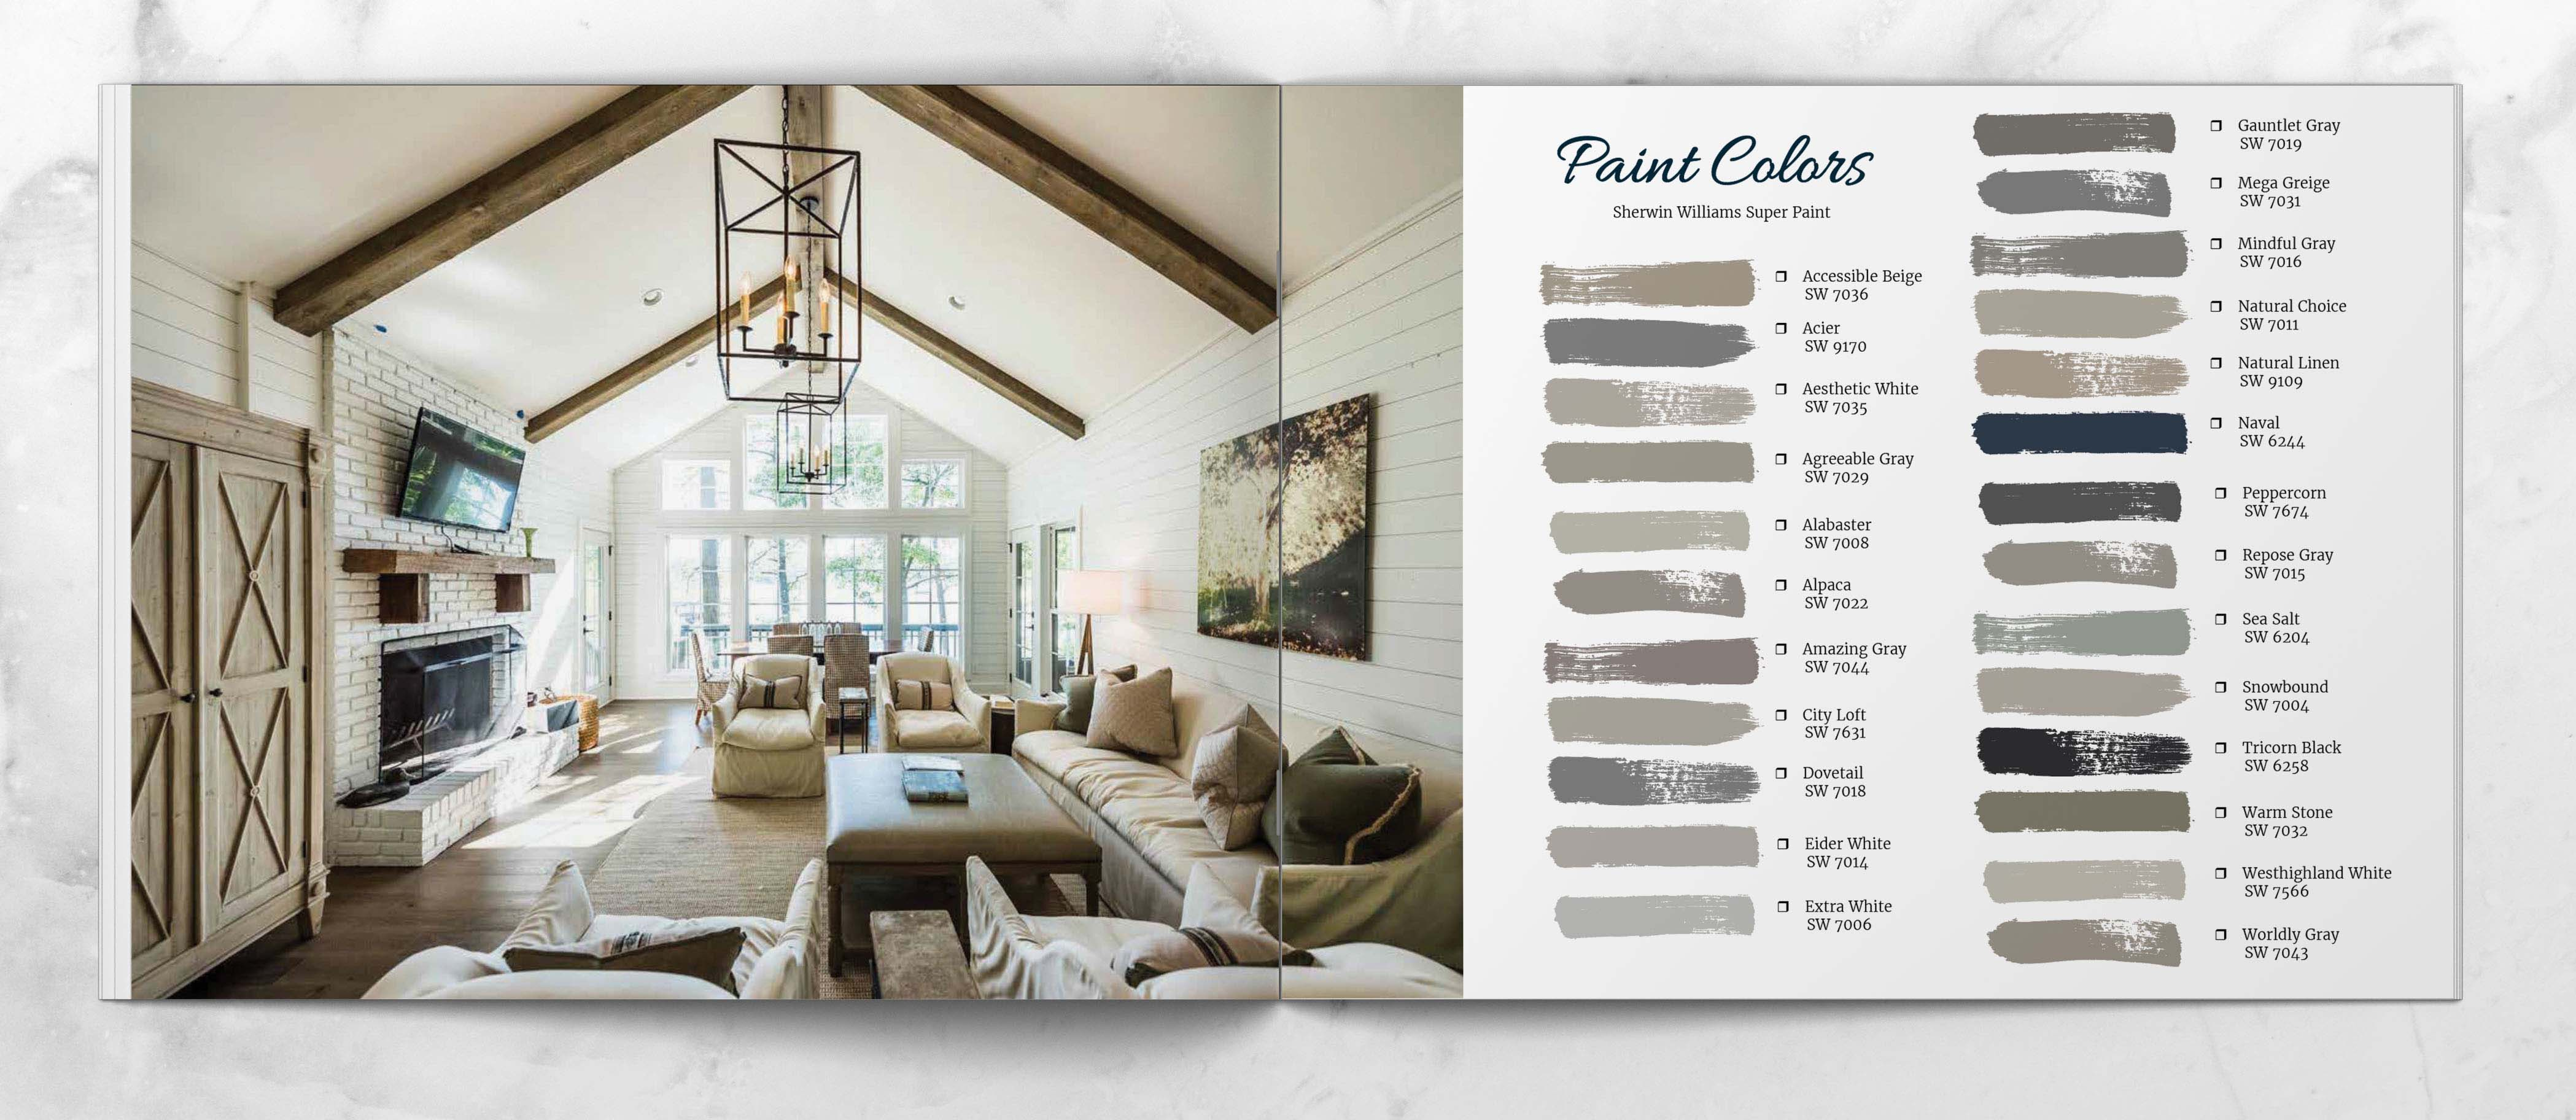 Get Inspired: View our Exclusive Design Guide!